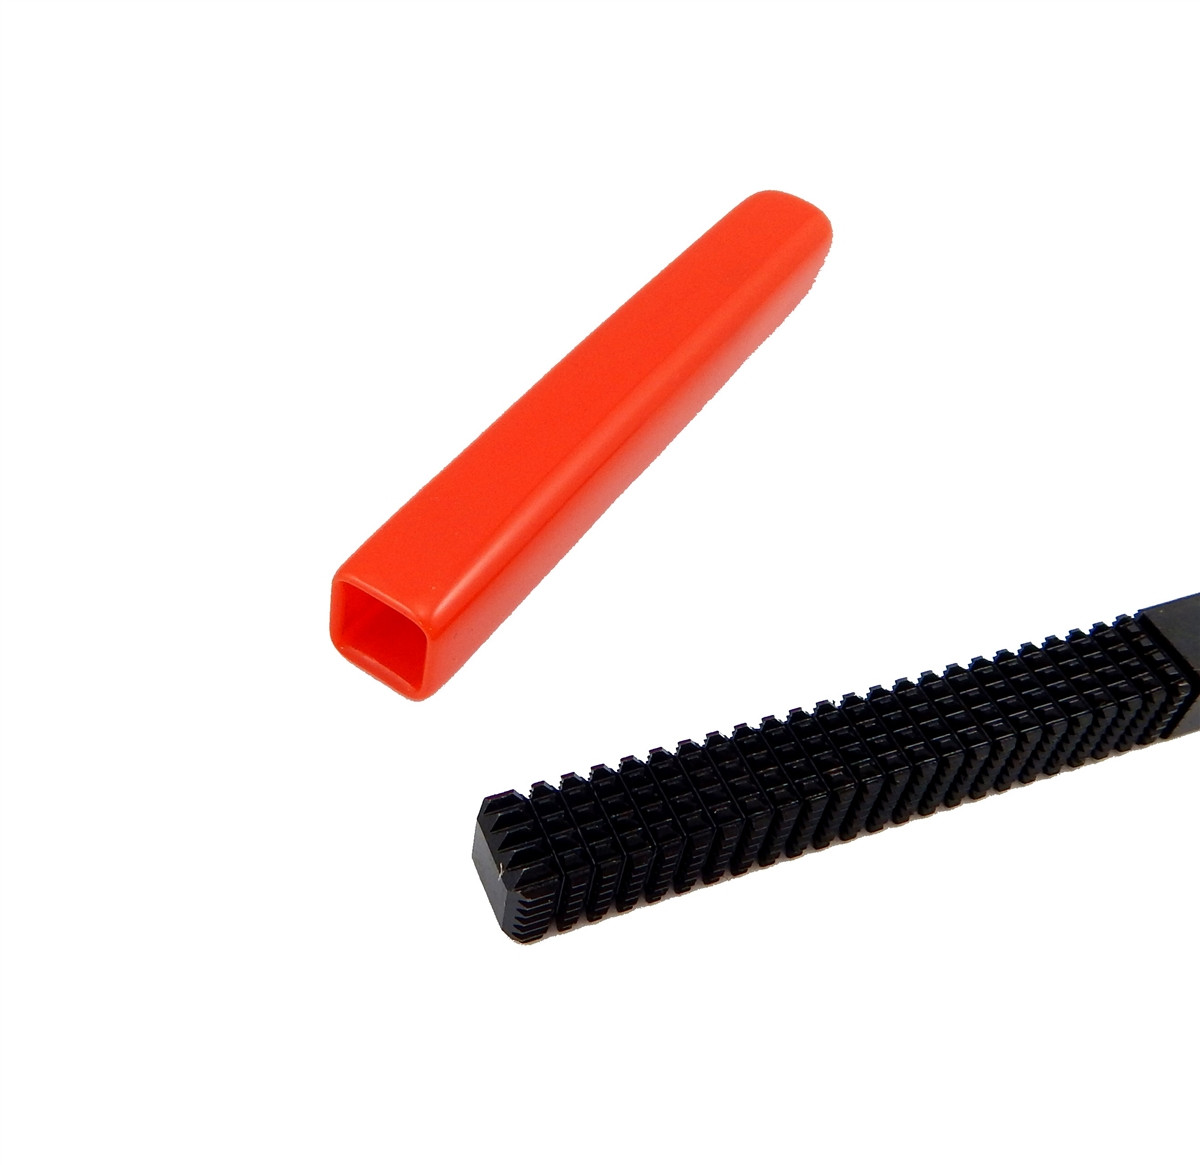 Jawco Red Vinyl File Handle Grip for 7/16in  Square Files Fits All Brands  USA